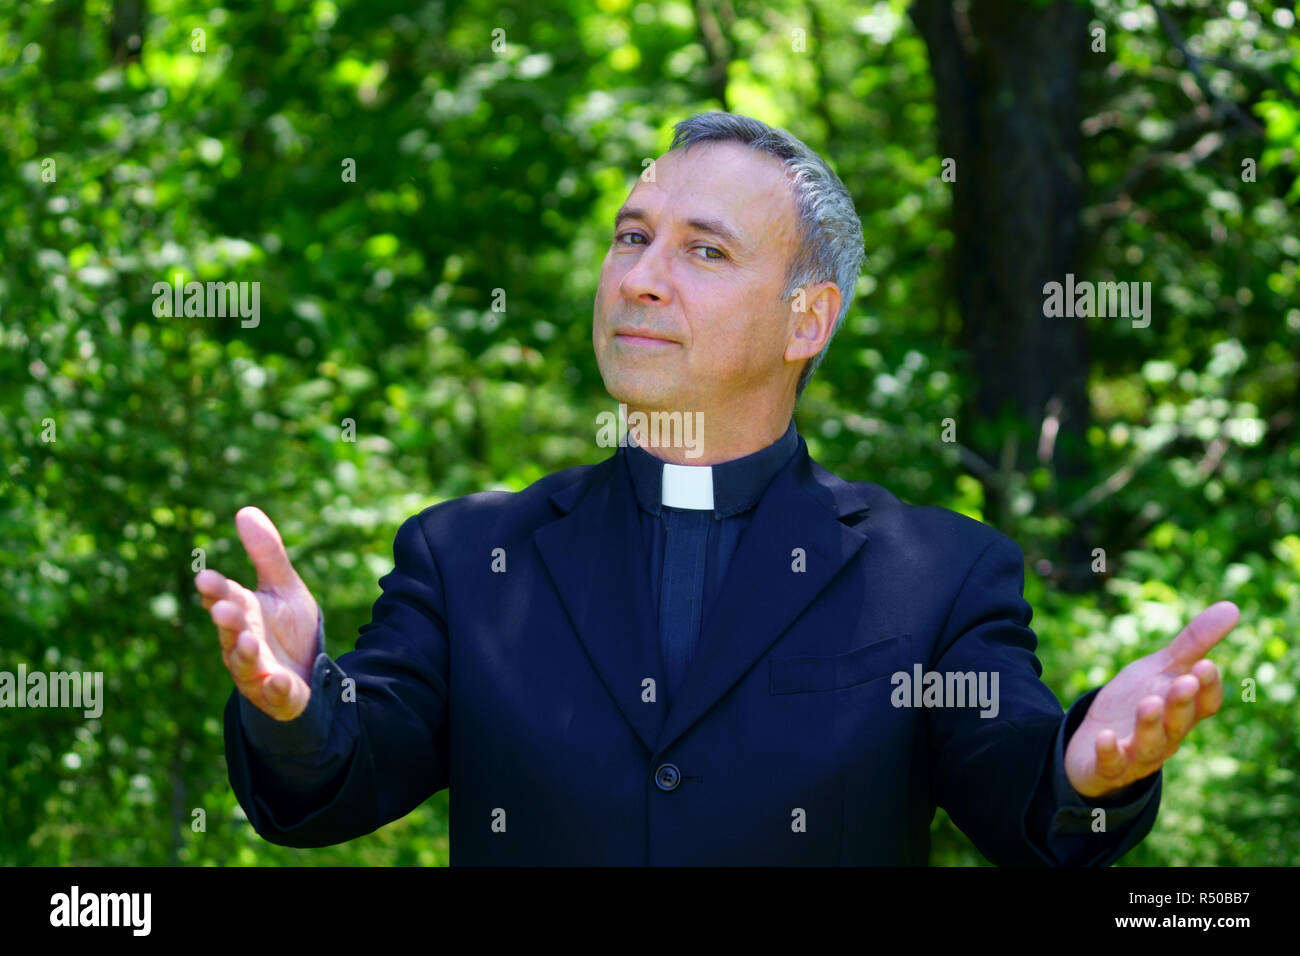 A good looking catholic priest is walking in the forest. Standing and looking at us with confidence, openning his arms. - Stock Image